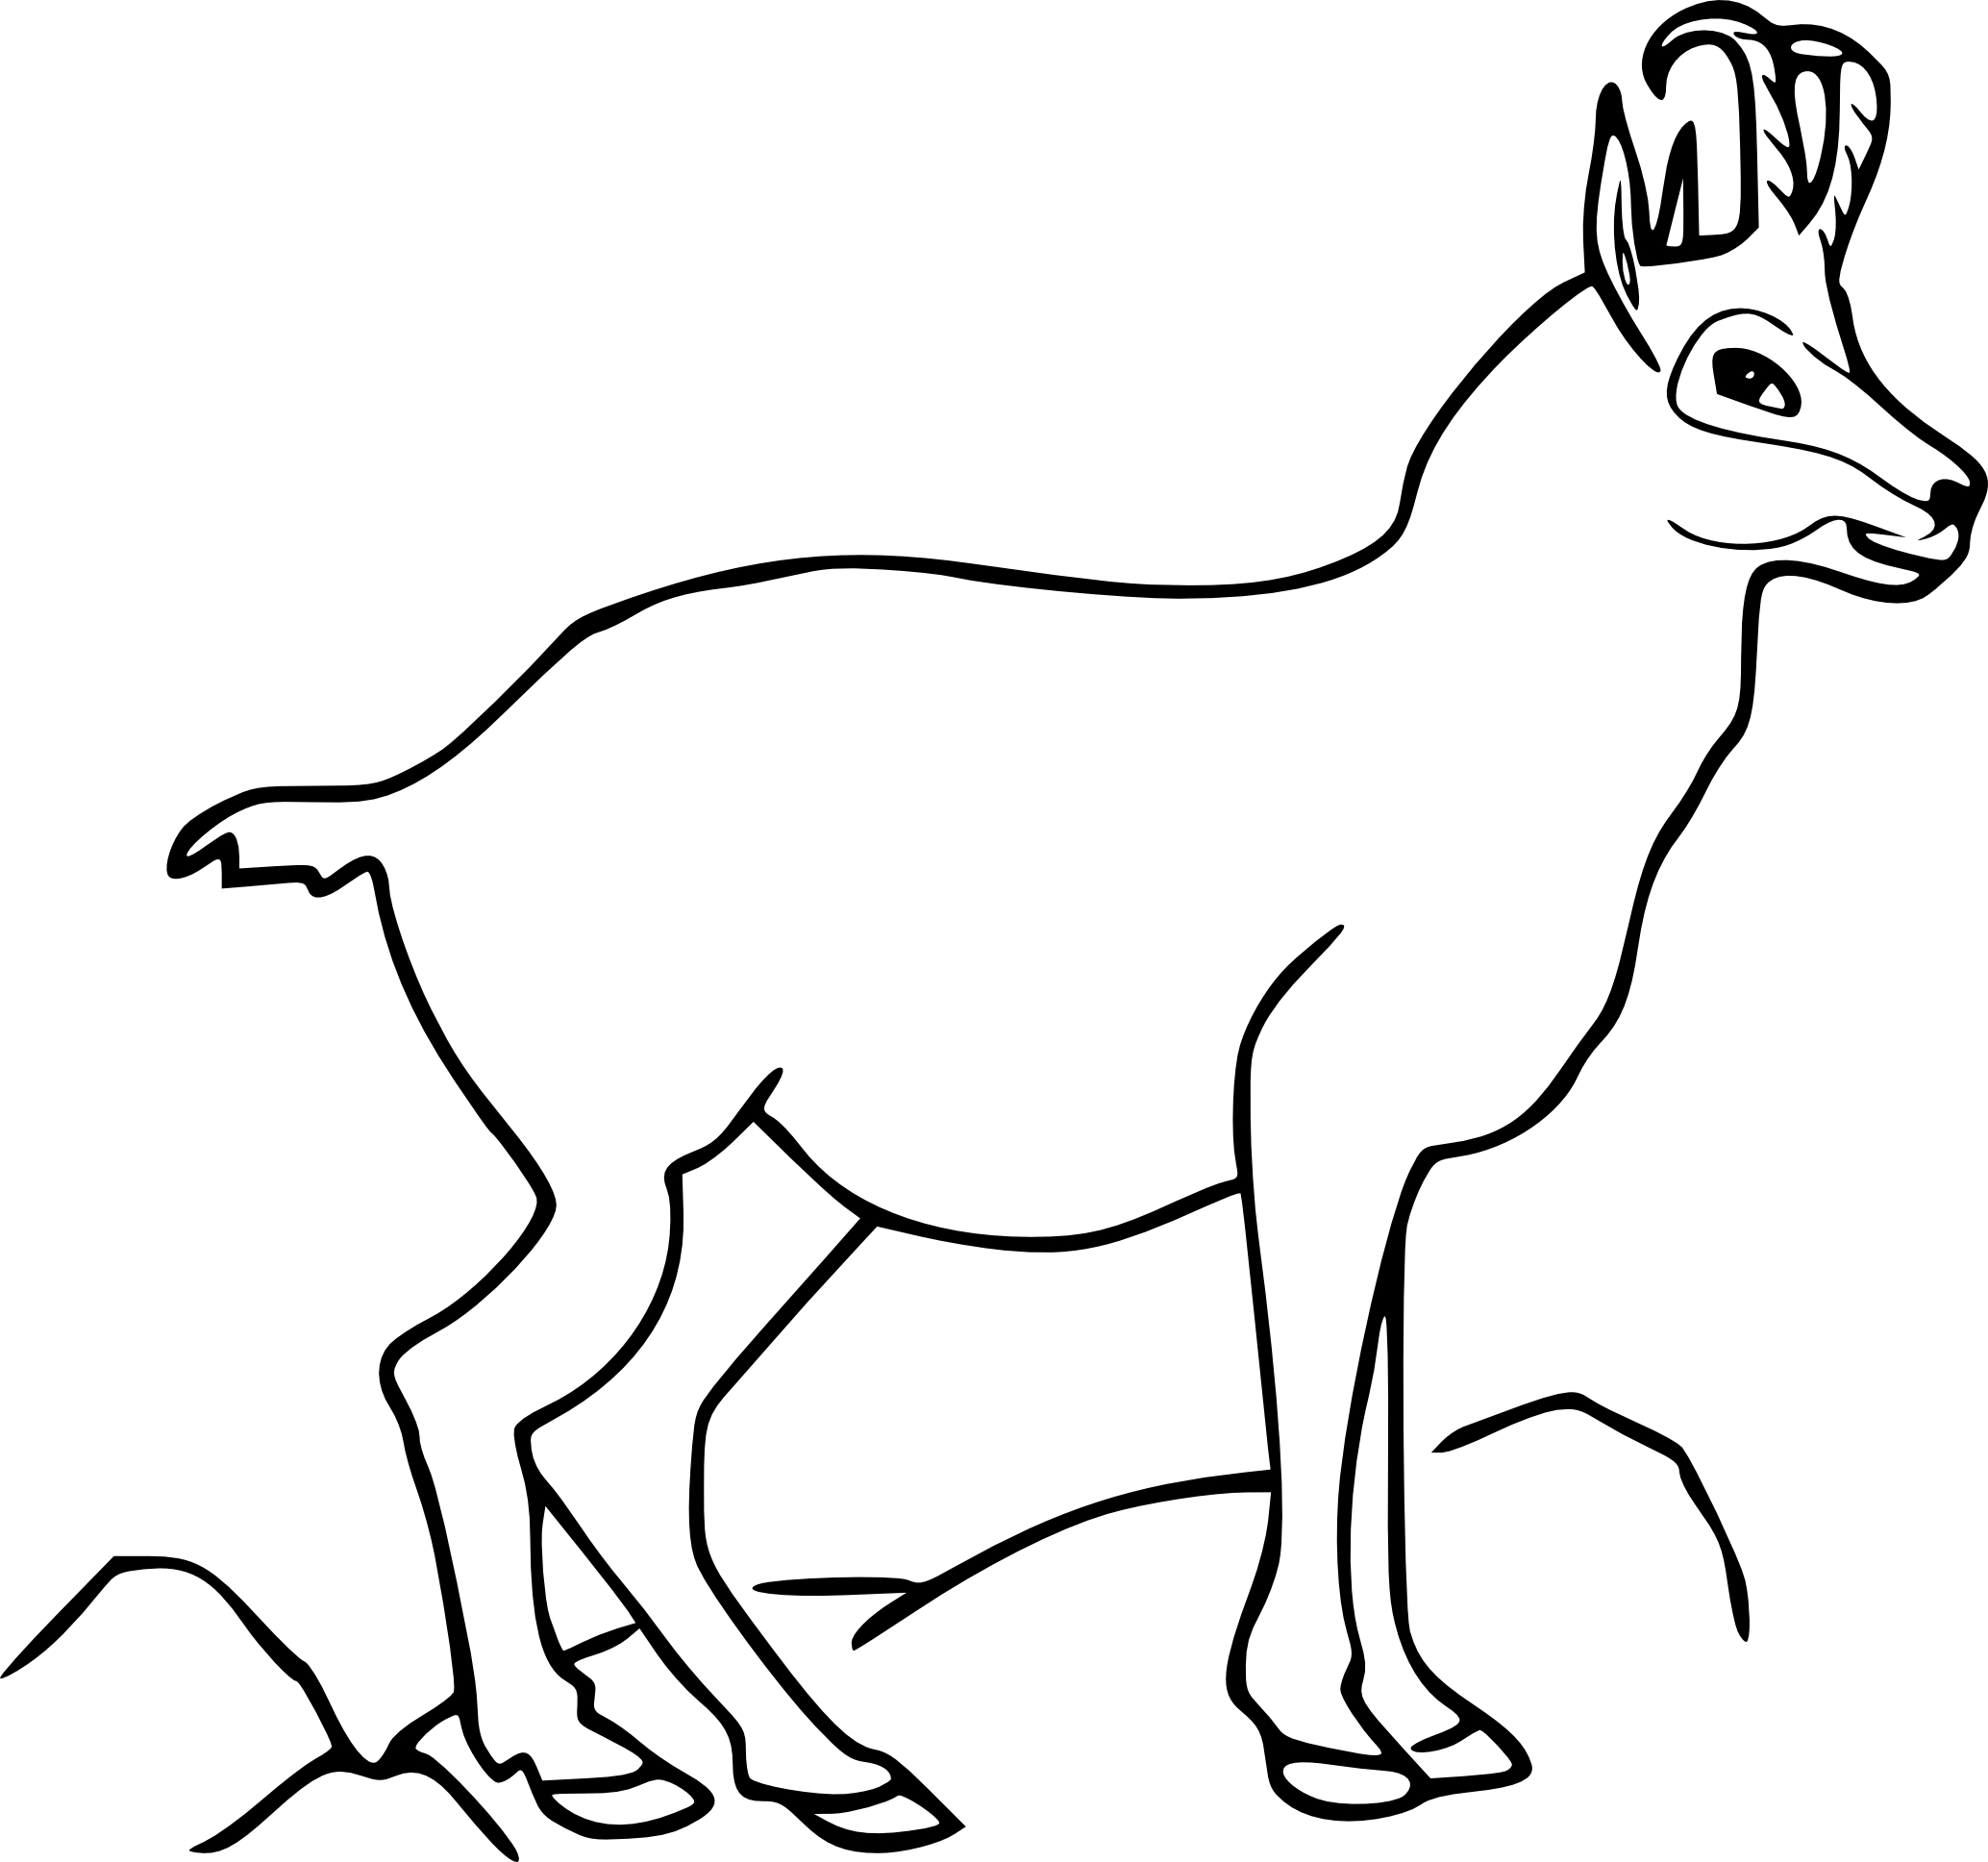 Tags:79 Best North American Animals Images On Pinterest,Coloring Pages  Pinterest,Explore Deer Coloring Pages And More! Pinterestca,56 Best Coloring  Zoo ...